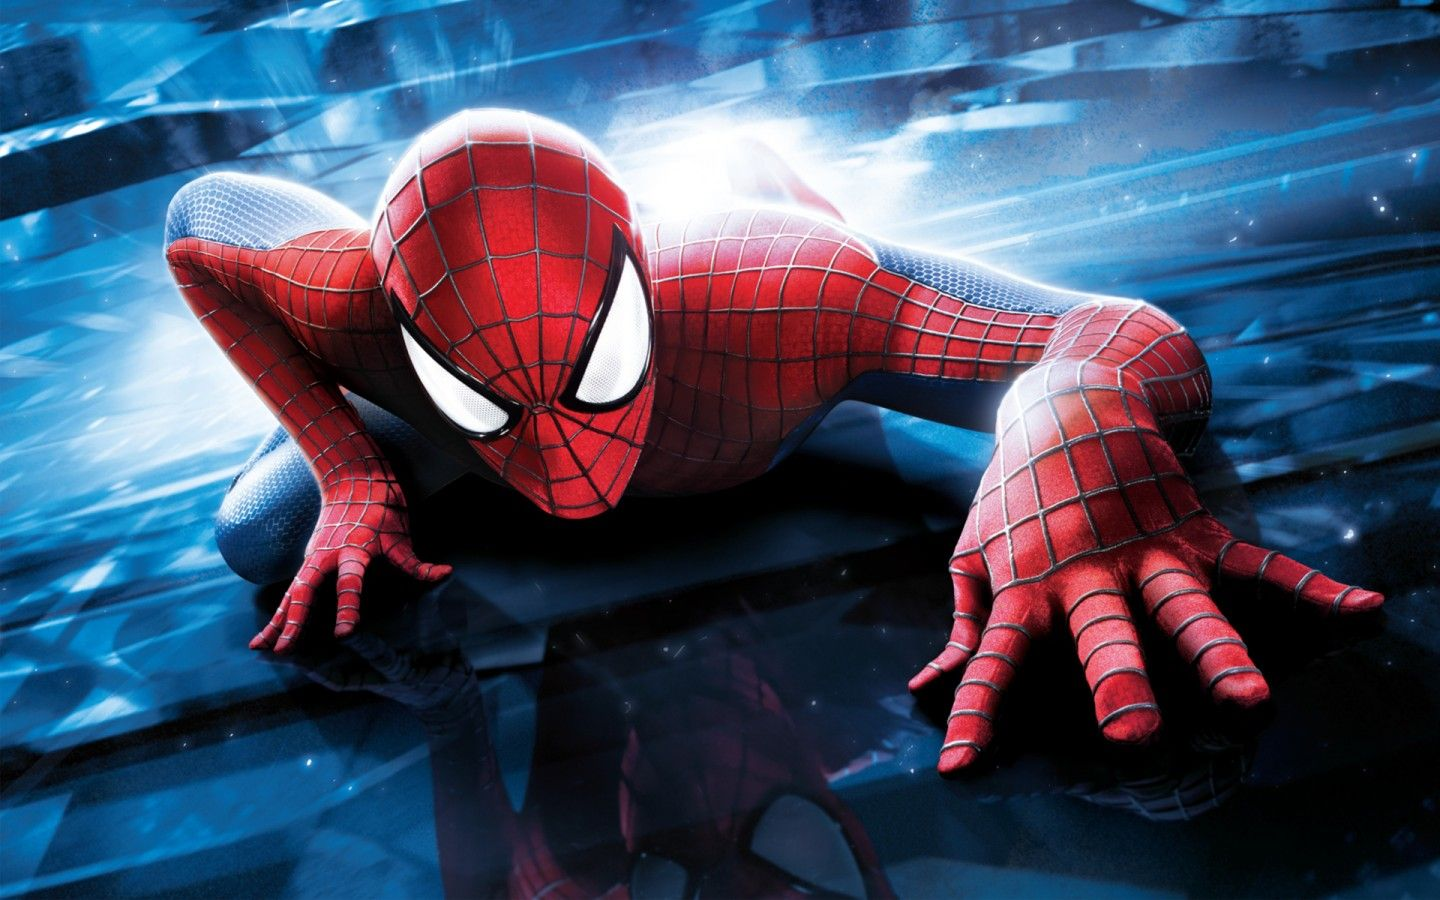 Must see Wallpaper High Resolution Spiderman - 6f08921e8246aaae98410152c2ca542e  2018_1653.jpg